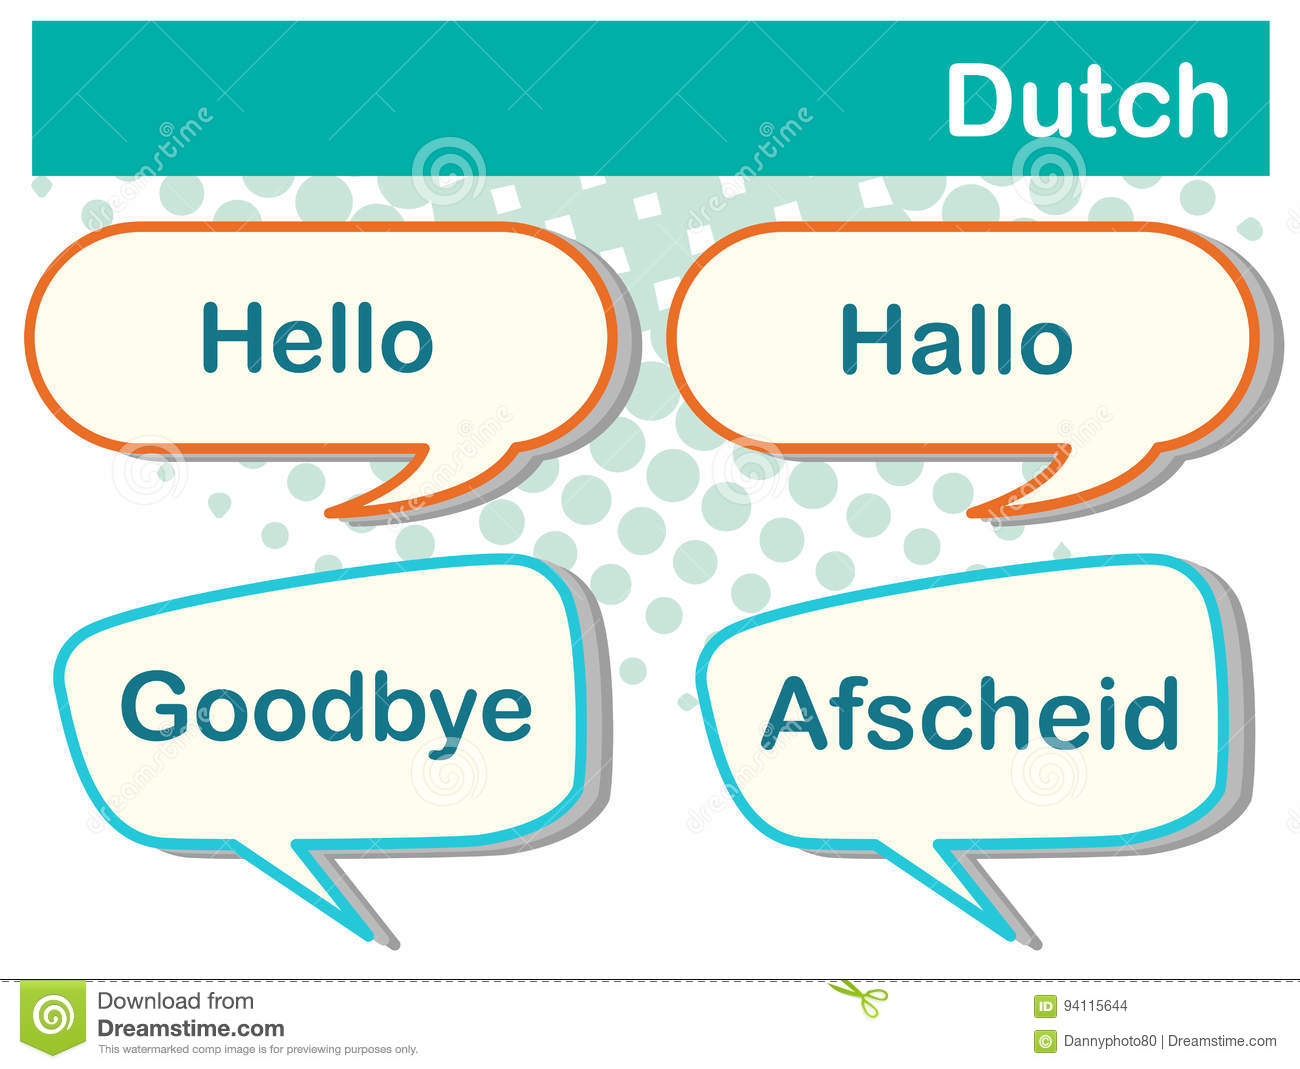 Greeting words in dutch language stock vector illustration of greeting words in dutch language kristyandbryce Gallery